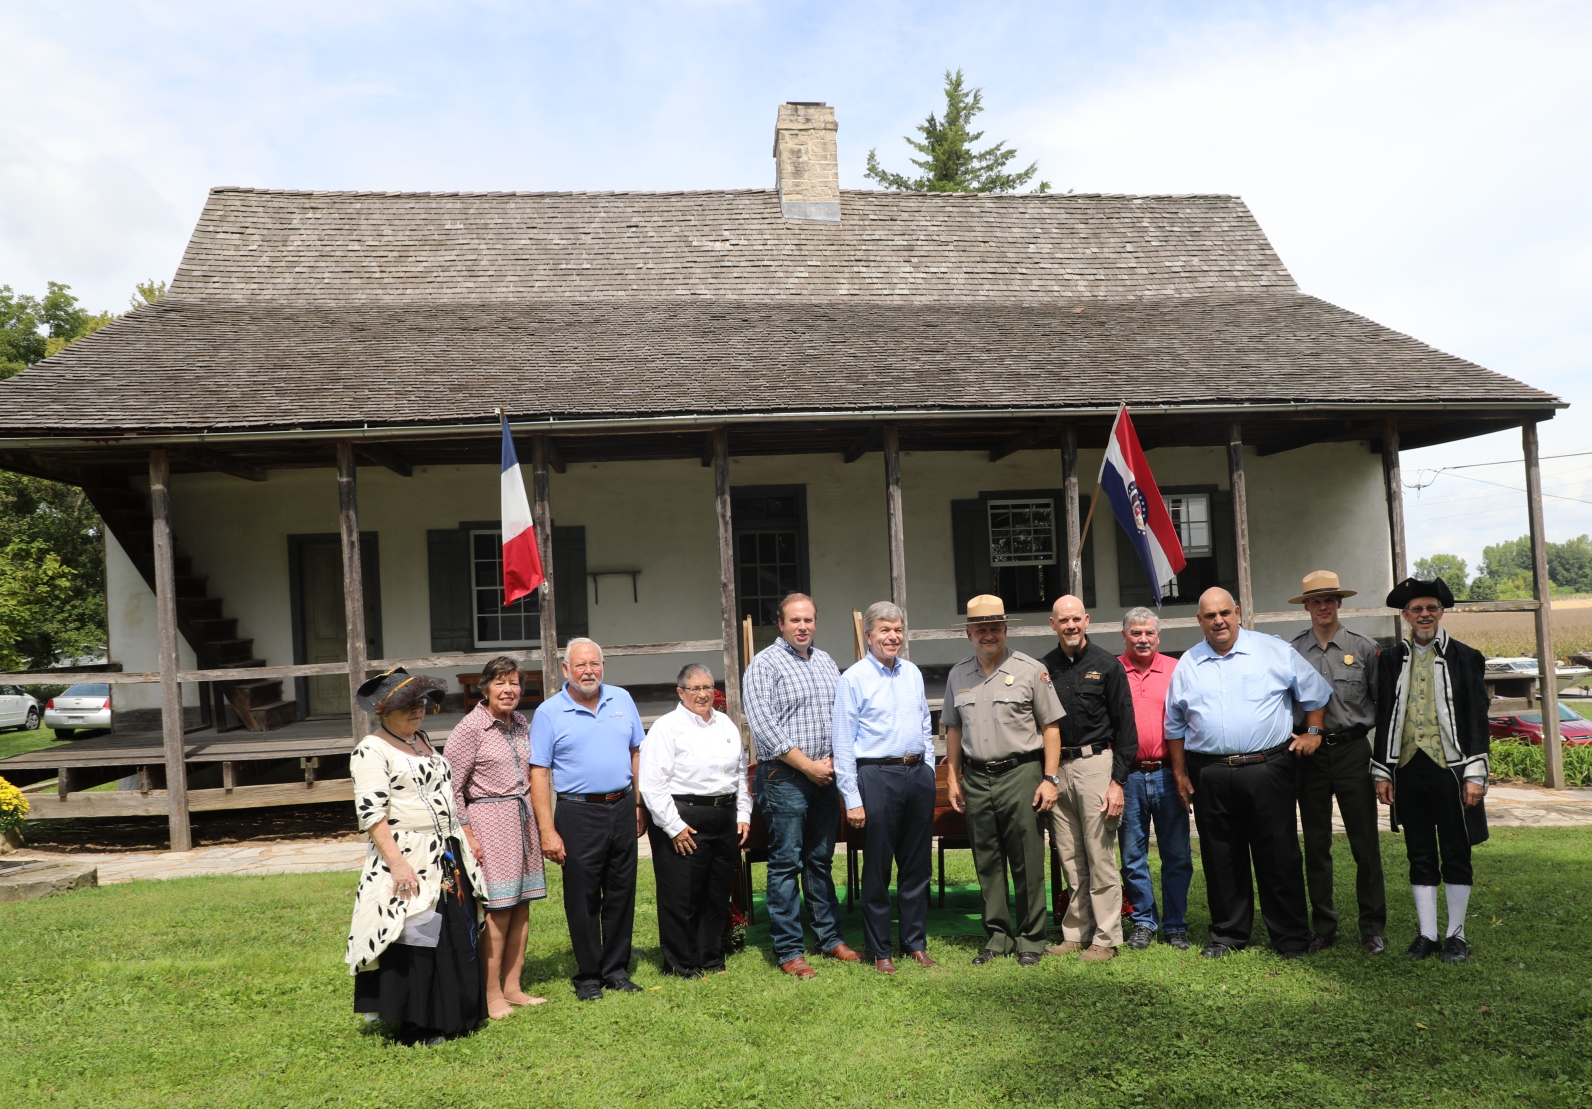 Gathering at the Beauvais-Amoreux House to sign the agreements between the National Park Service and partners.